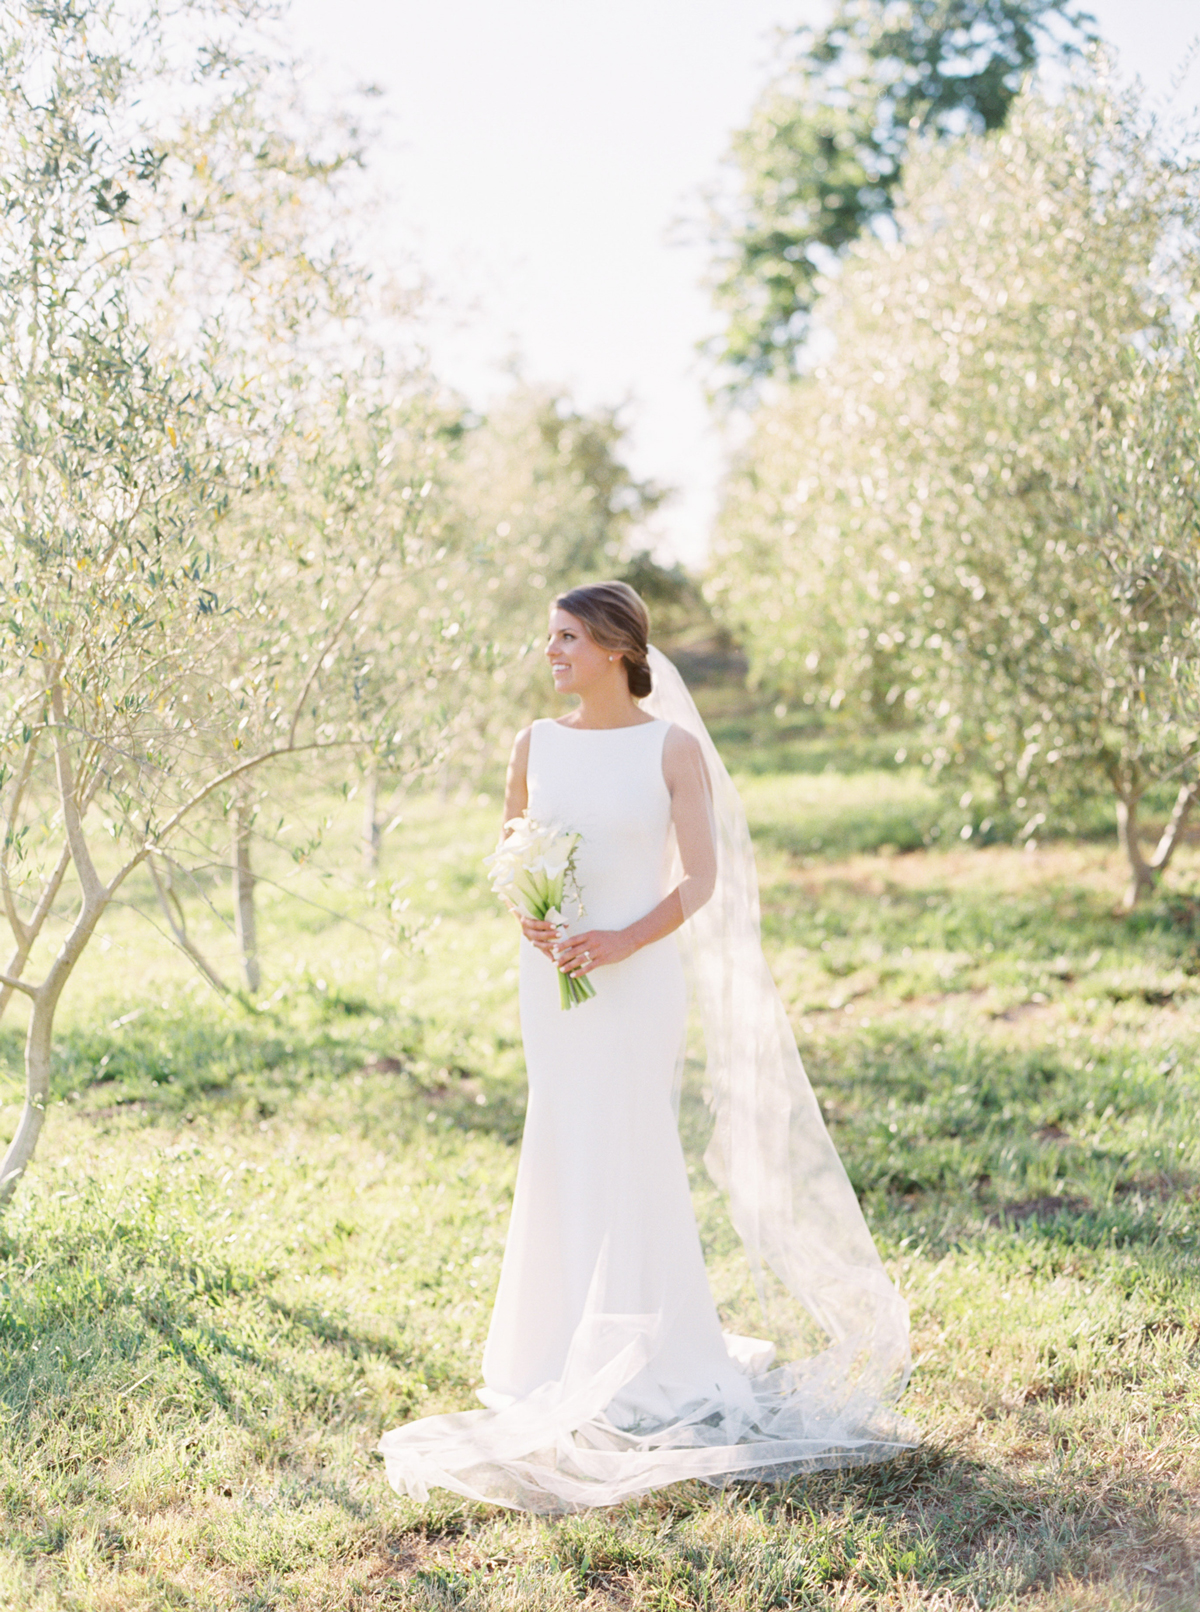 Summer Wedding Dresses Perfect for Warmer Weather